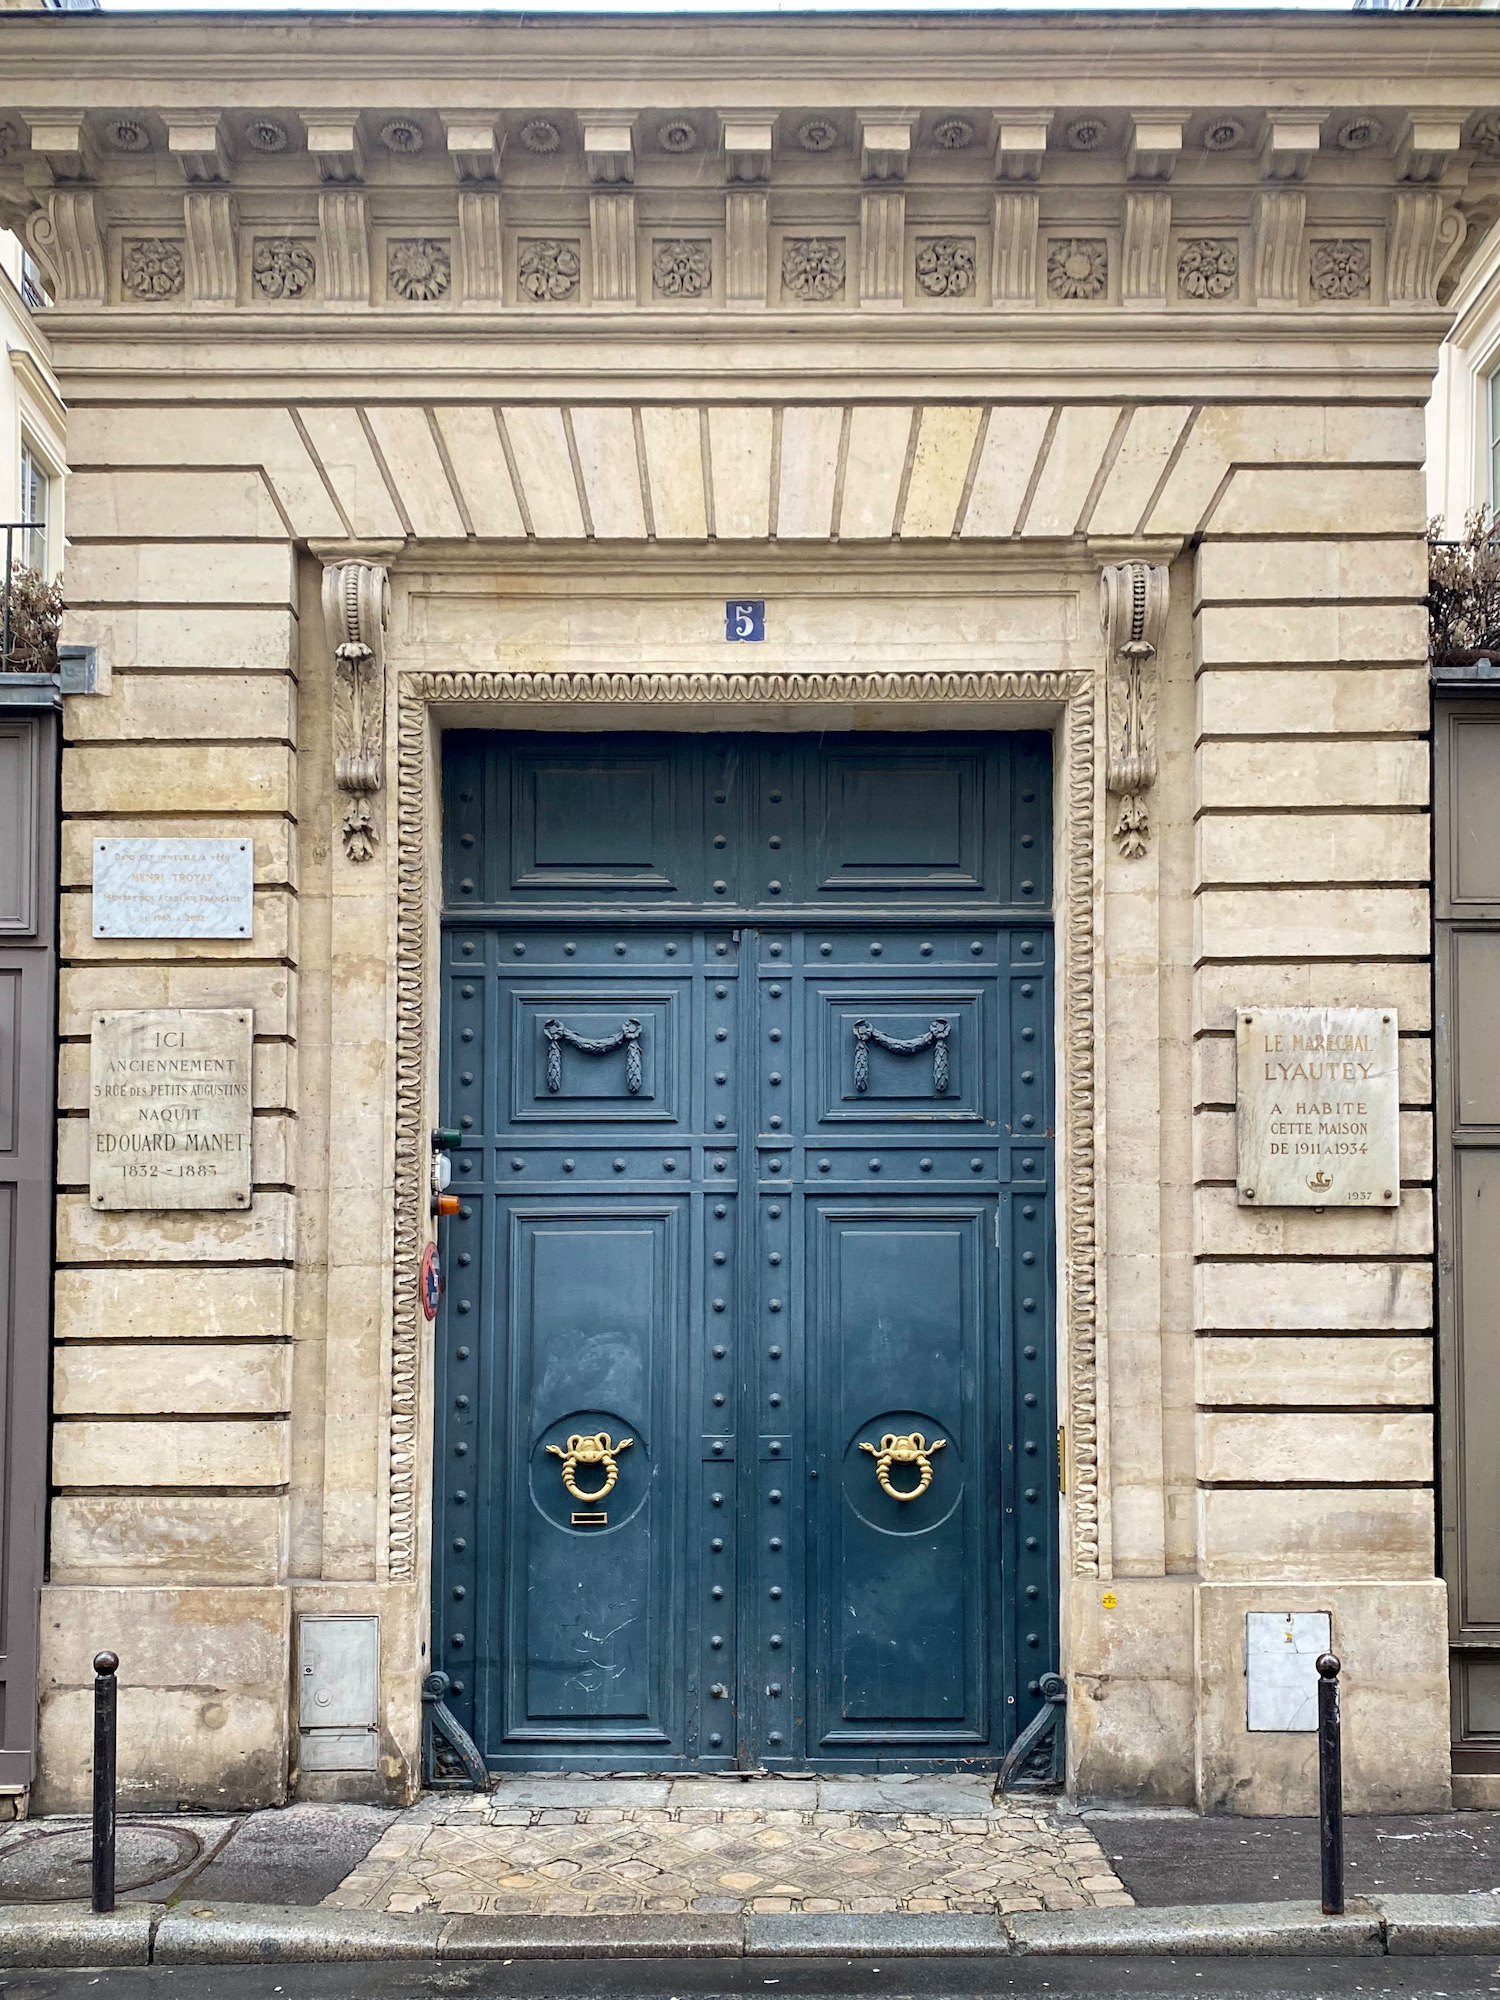 5 rue bonaparte door